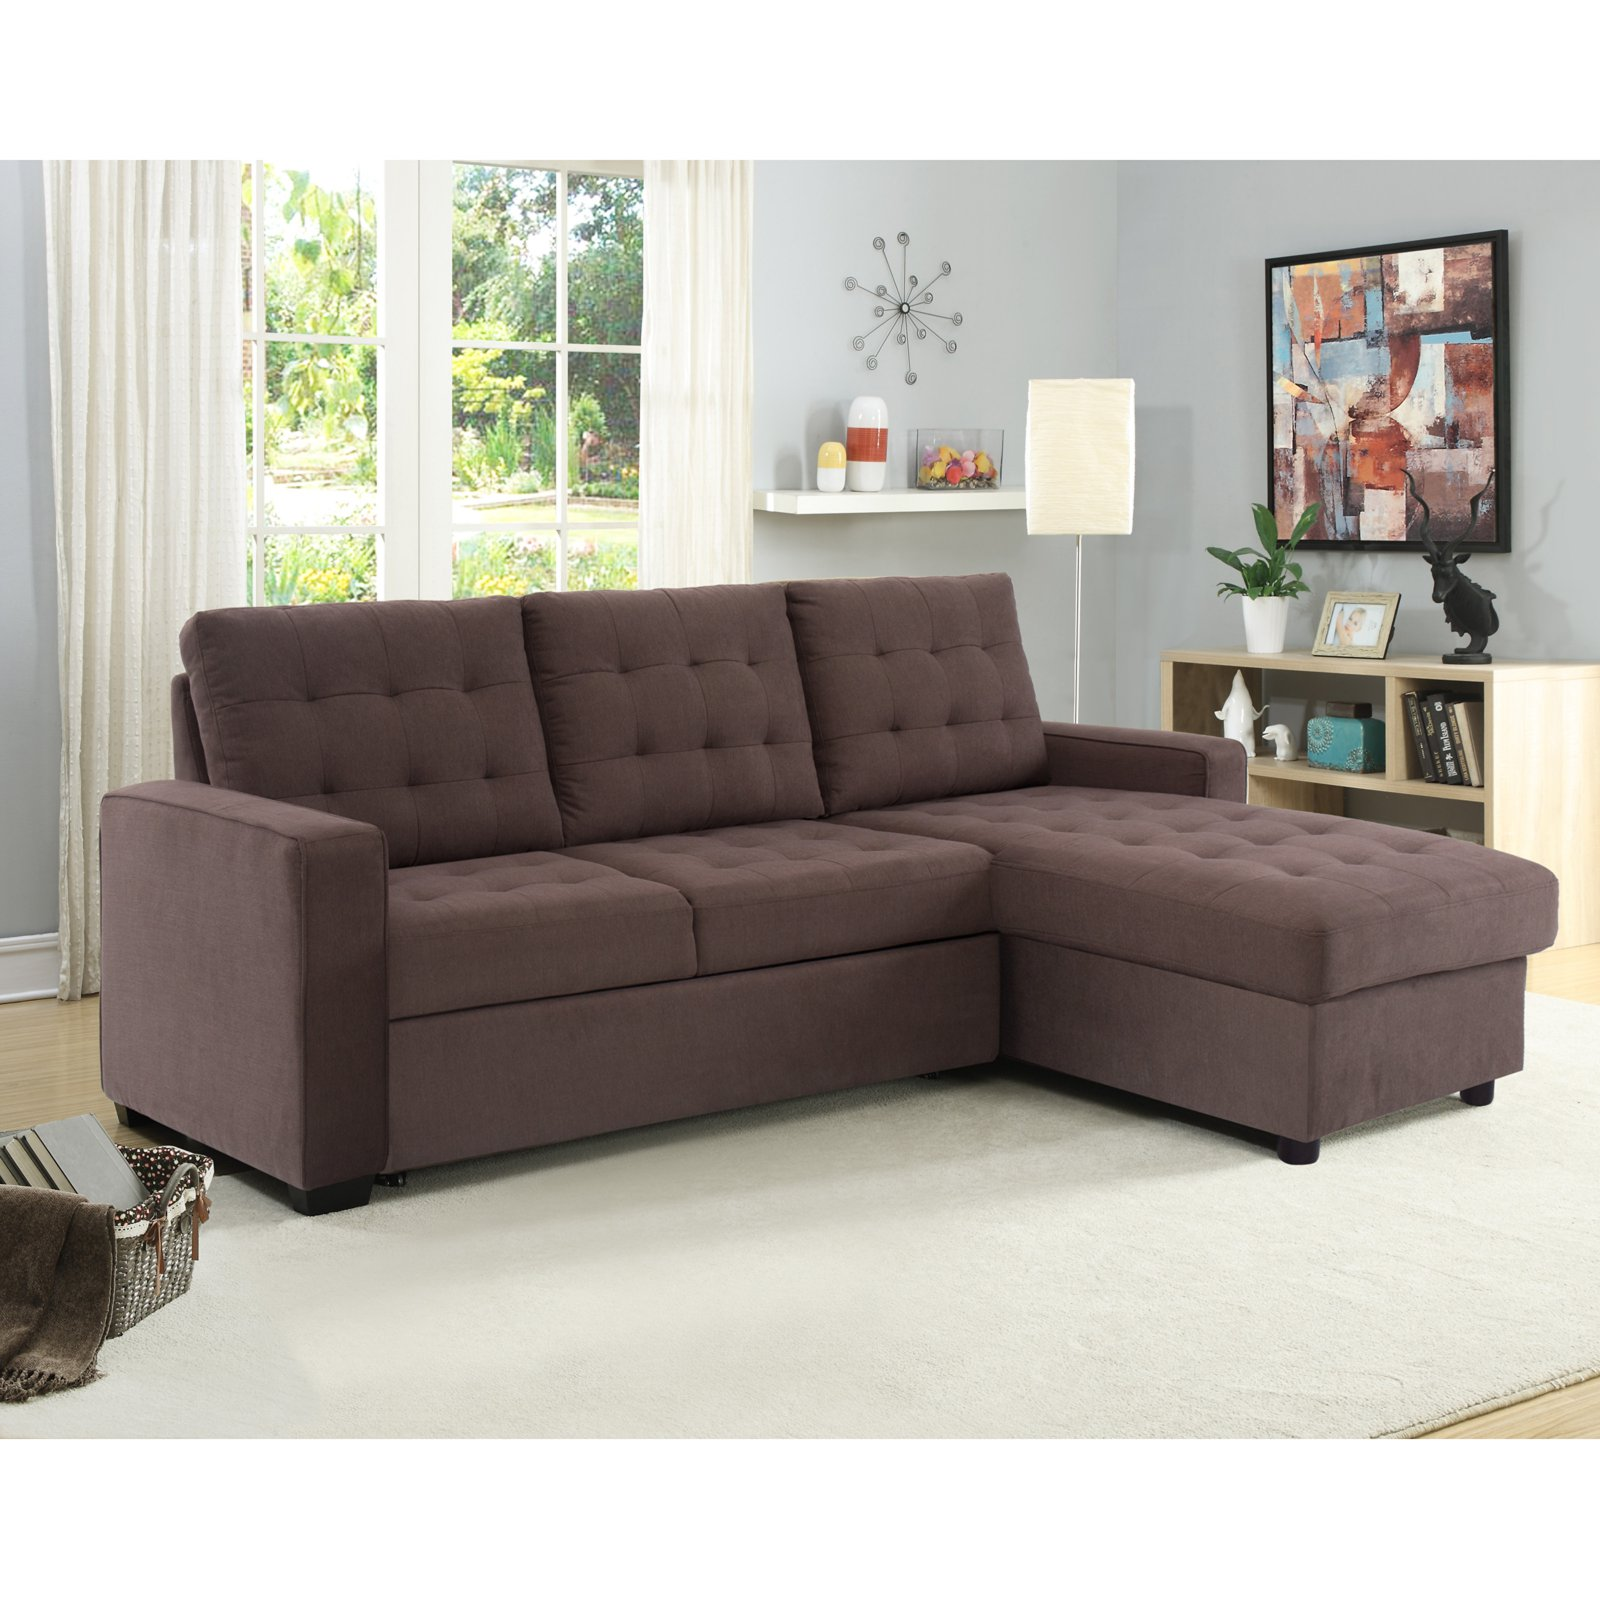 Bostal Serta Sofa Bed Convertible Converts Into A Sofa Chaise Bed And Storage Under The Chaise Walmart Com Walmart Com